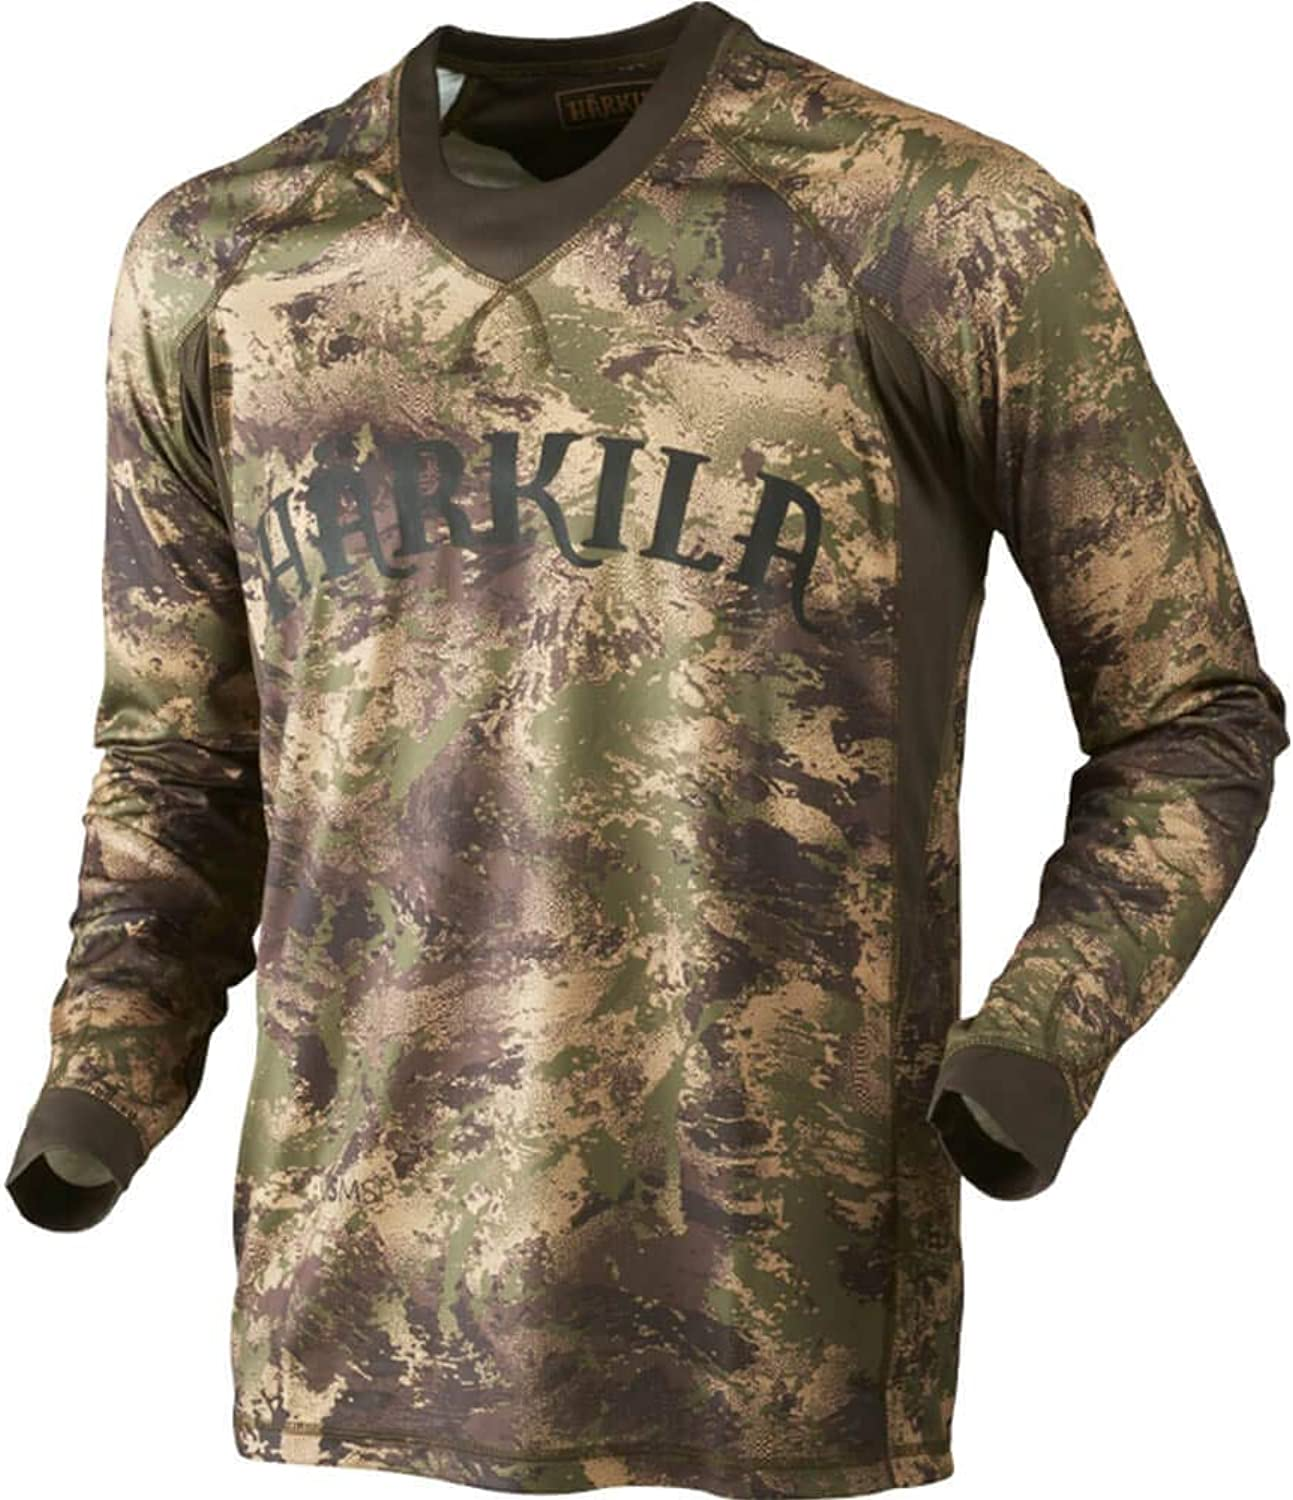 Harkila Lynx L S t-shirt AXIS MSP Forest Green Large